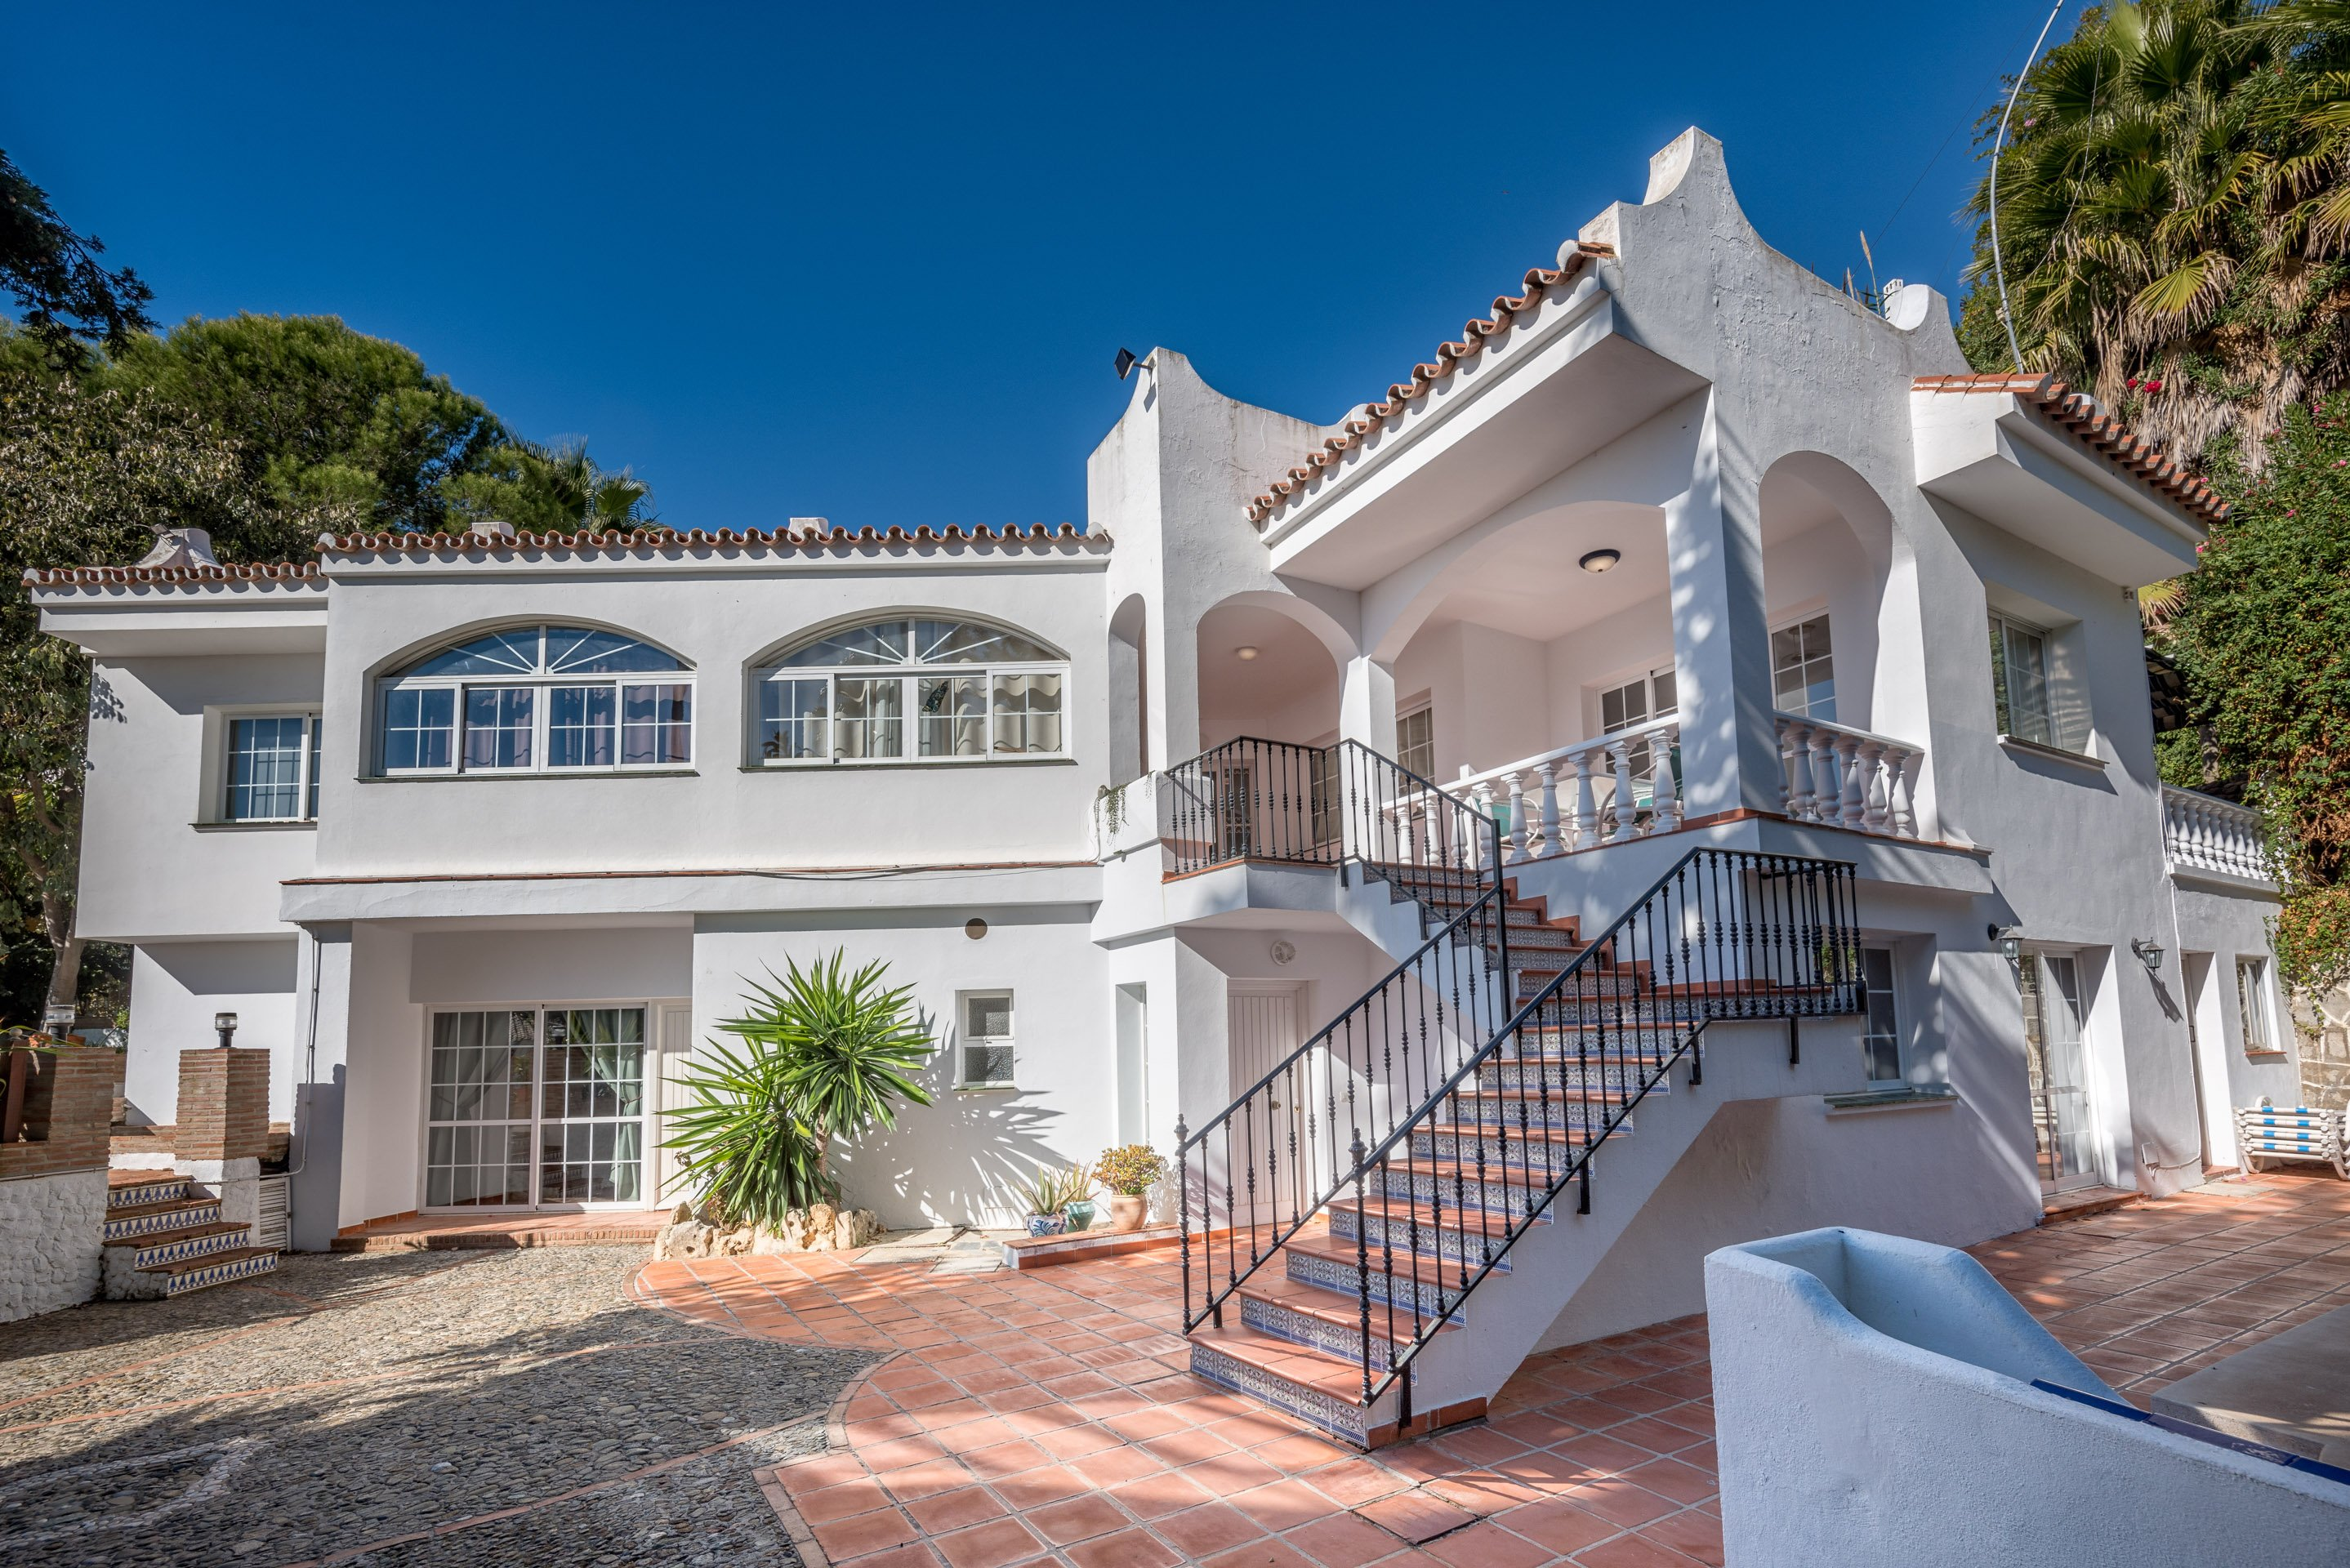 5BR Villa Rafaela, 5 min to Beach, Stunning Sea Views